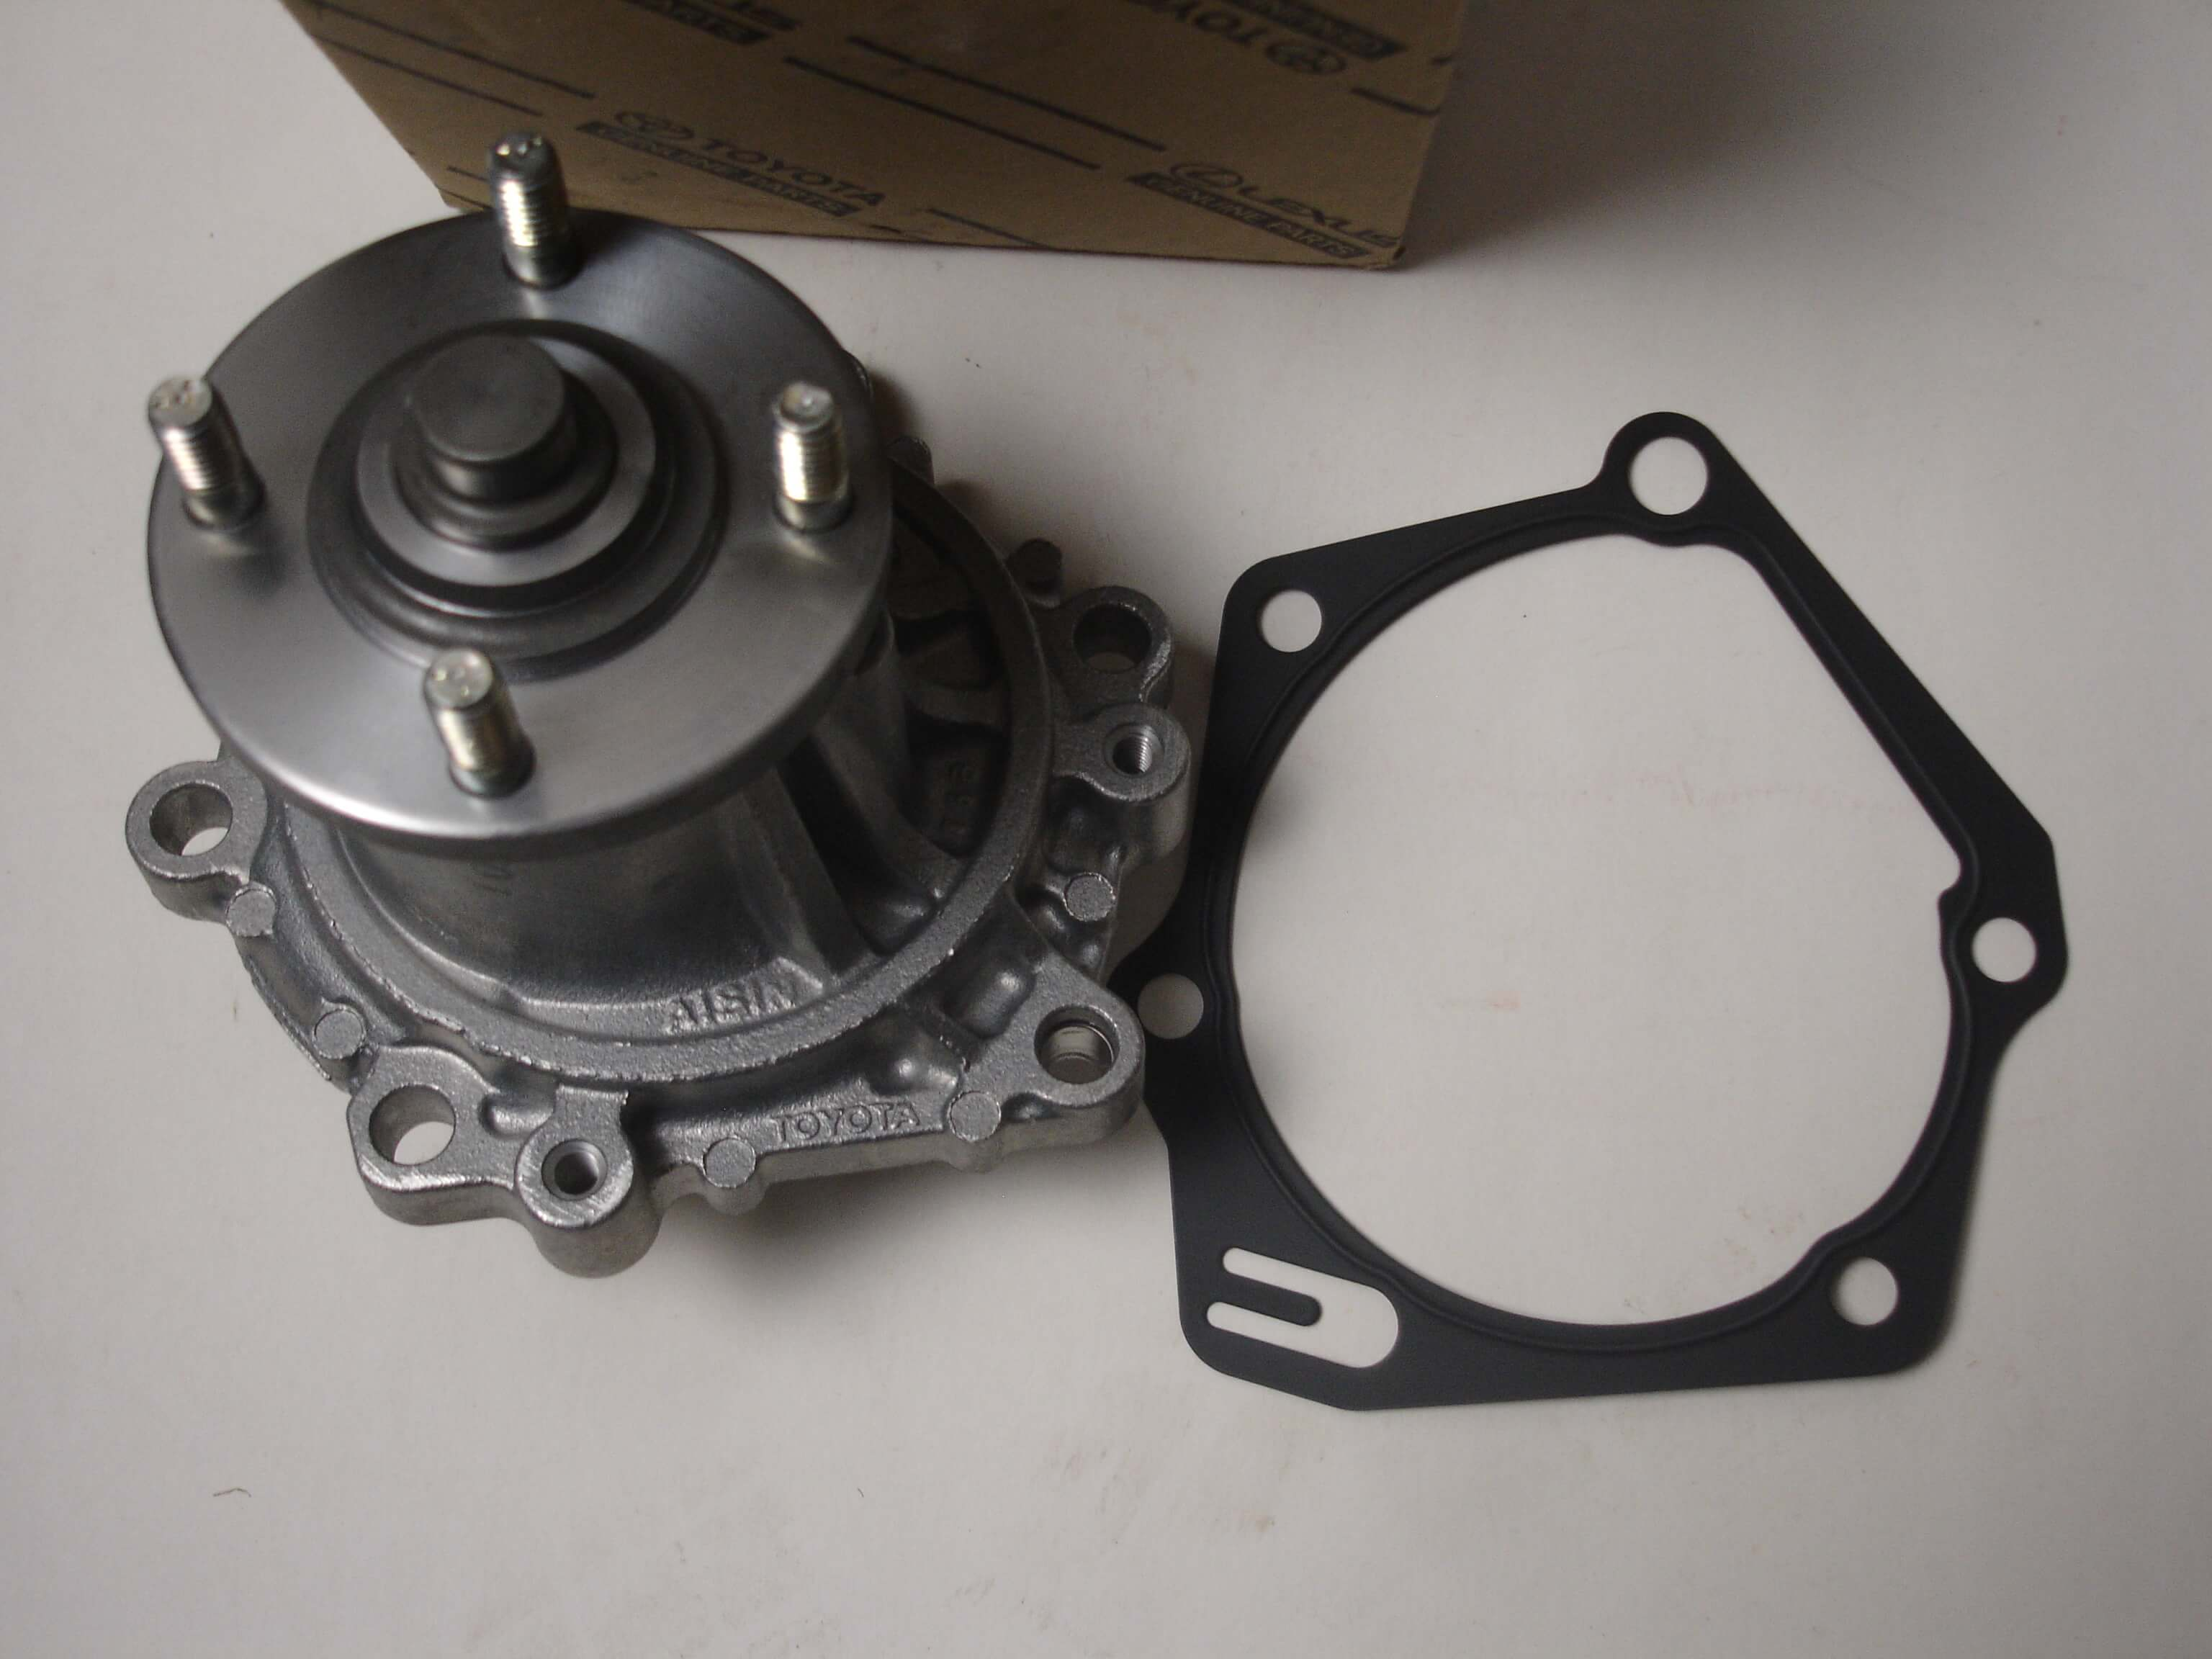 OEM water pump and gasket, For the 2L 3L 5L Diesel Engine. Factory part number 16100-59257. Other part number that are interchangeable are. 16100-59066, 16100-59155, 16100--59255, 16100-59256, 16100-59257